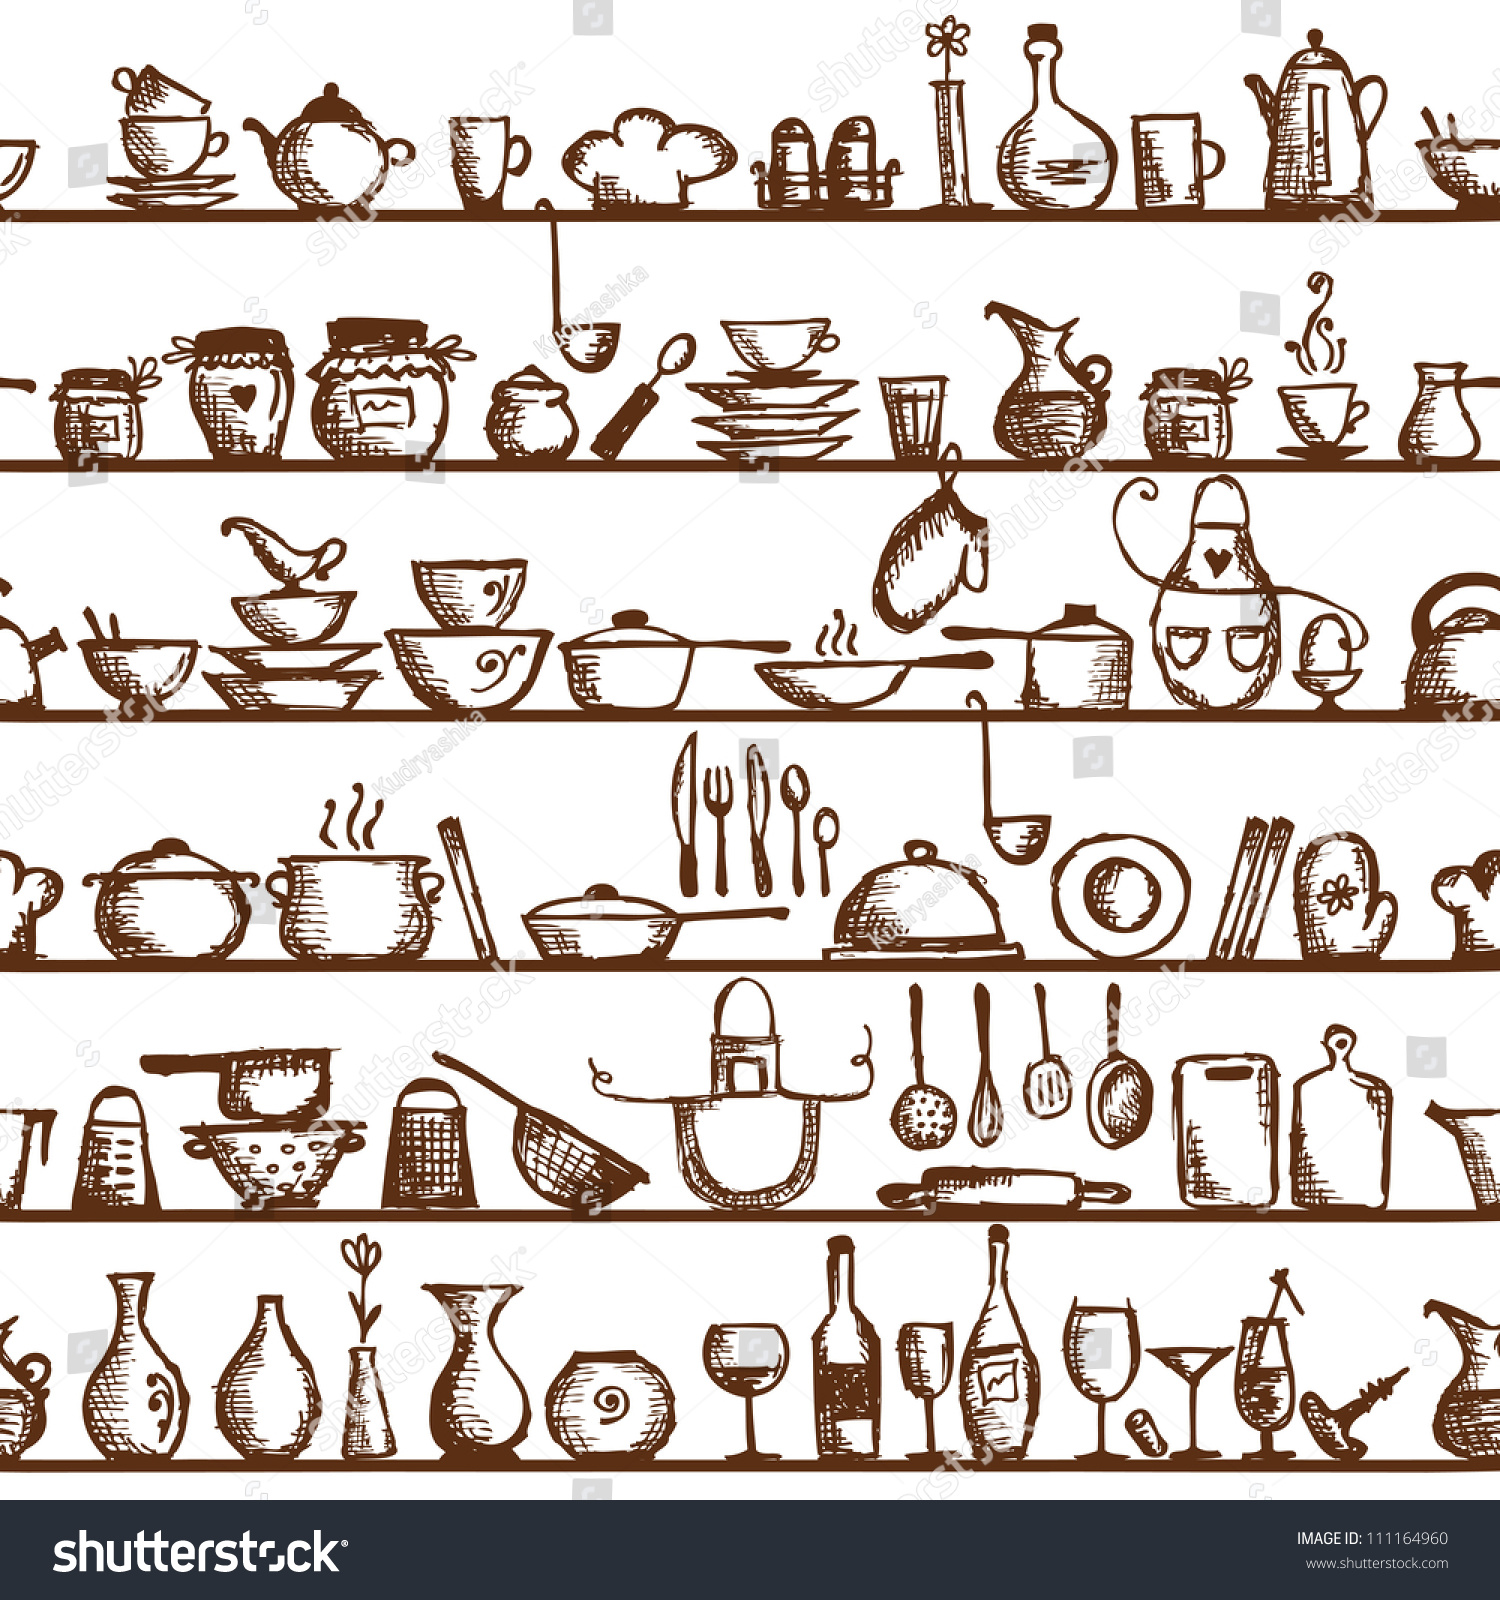 Kitchen Utensils On Shelves Sketch Drawing Seamless Pattern